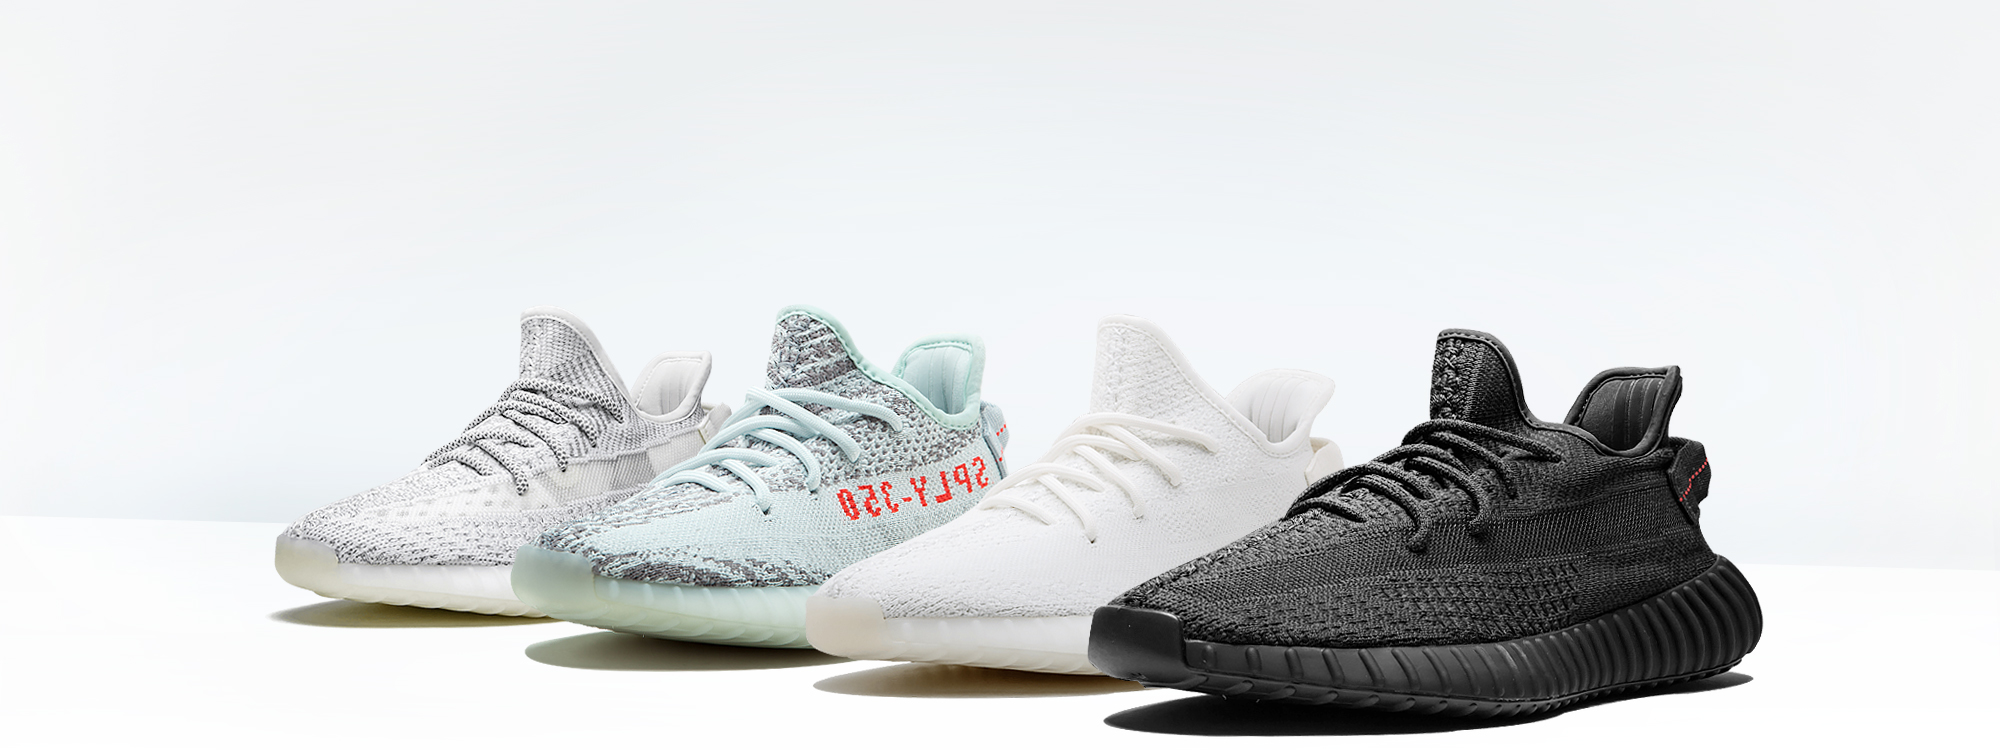 Buy new Adidas Yeezy Boost by Kanye West   unauthorized